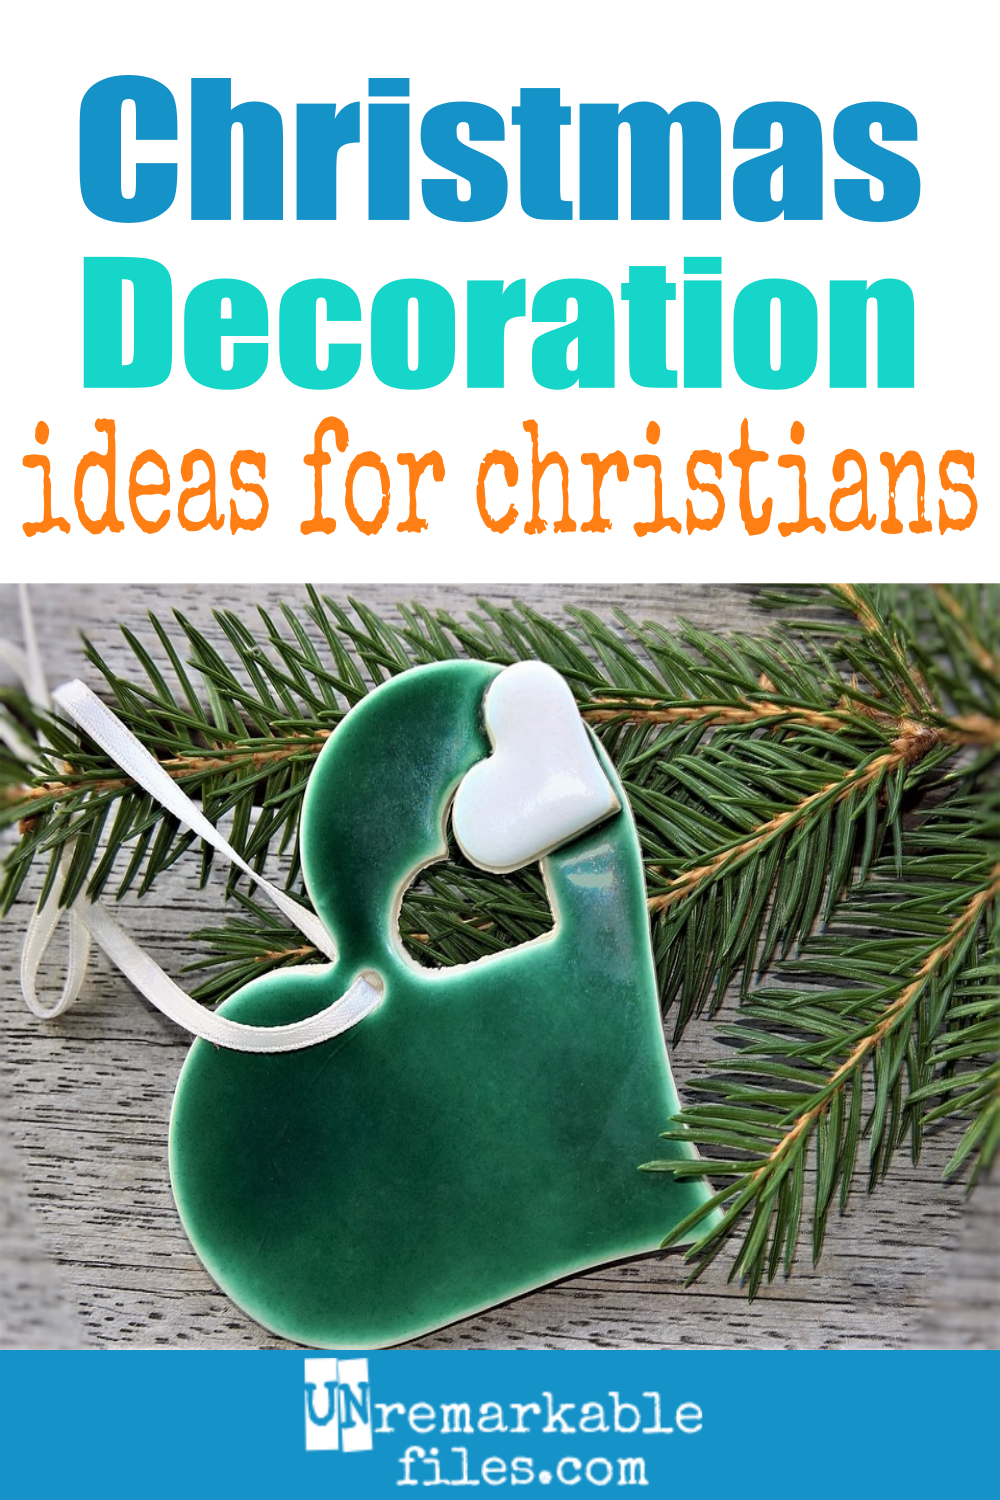 Unremarkable Files: Meaningful Christmas Decorations for